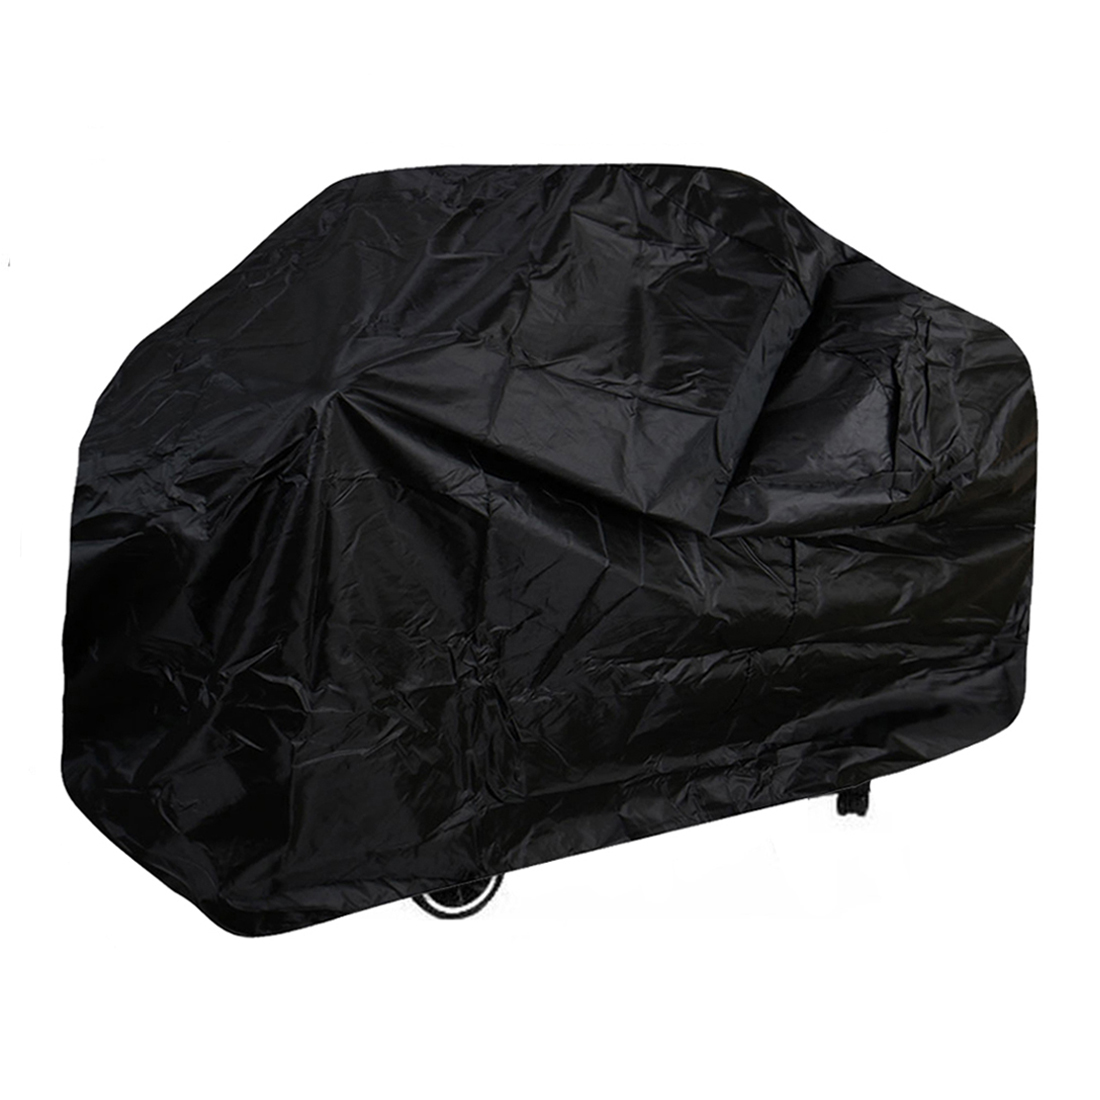 Outdoor Garden Breathable BBQ Cover Water Resistant Barbecue Grill Protector Black L